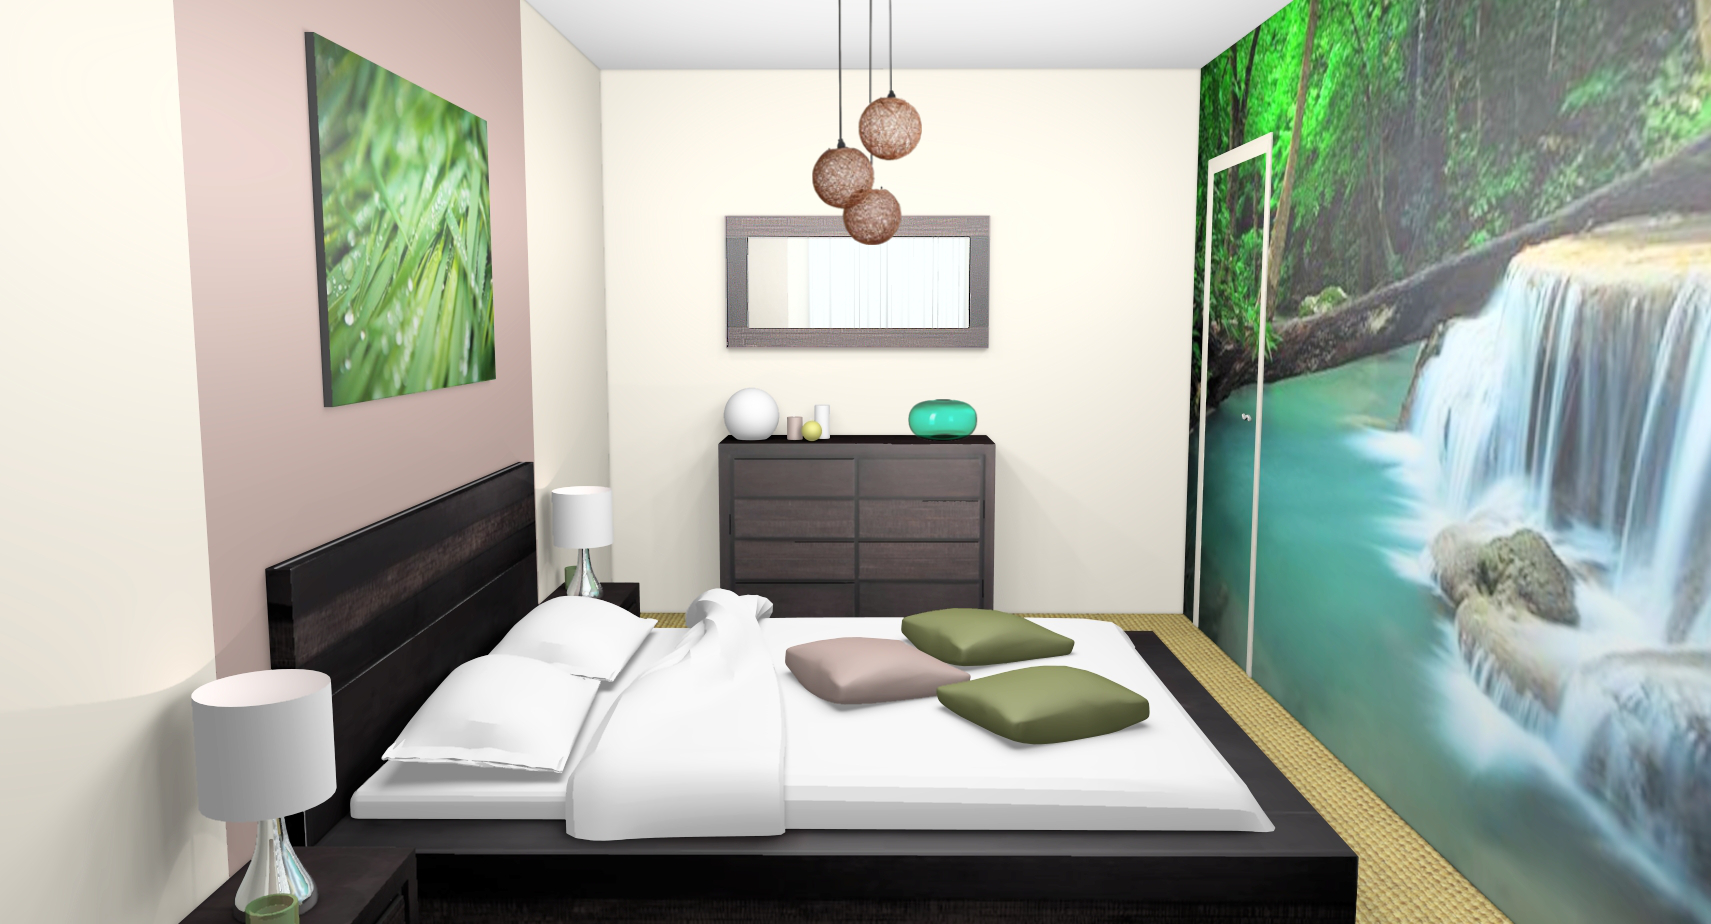 Idee deco chambre adulte zen photos de conception de for Idee deco chambre adulte